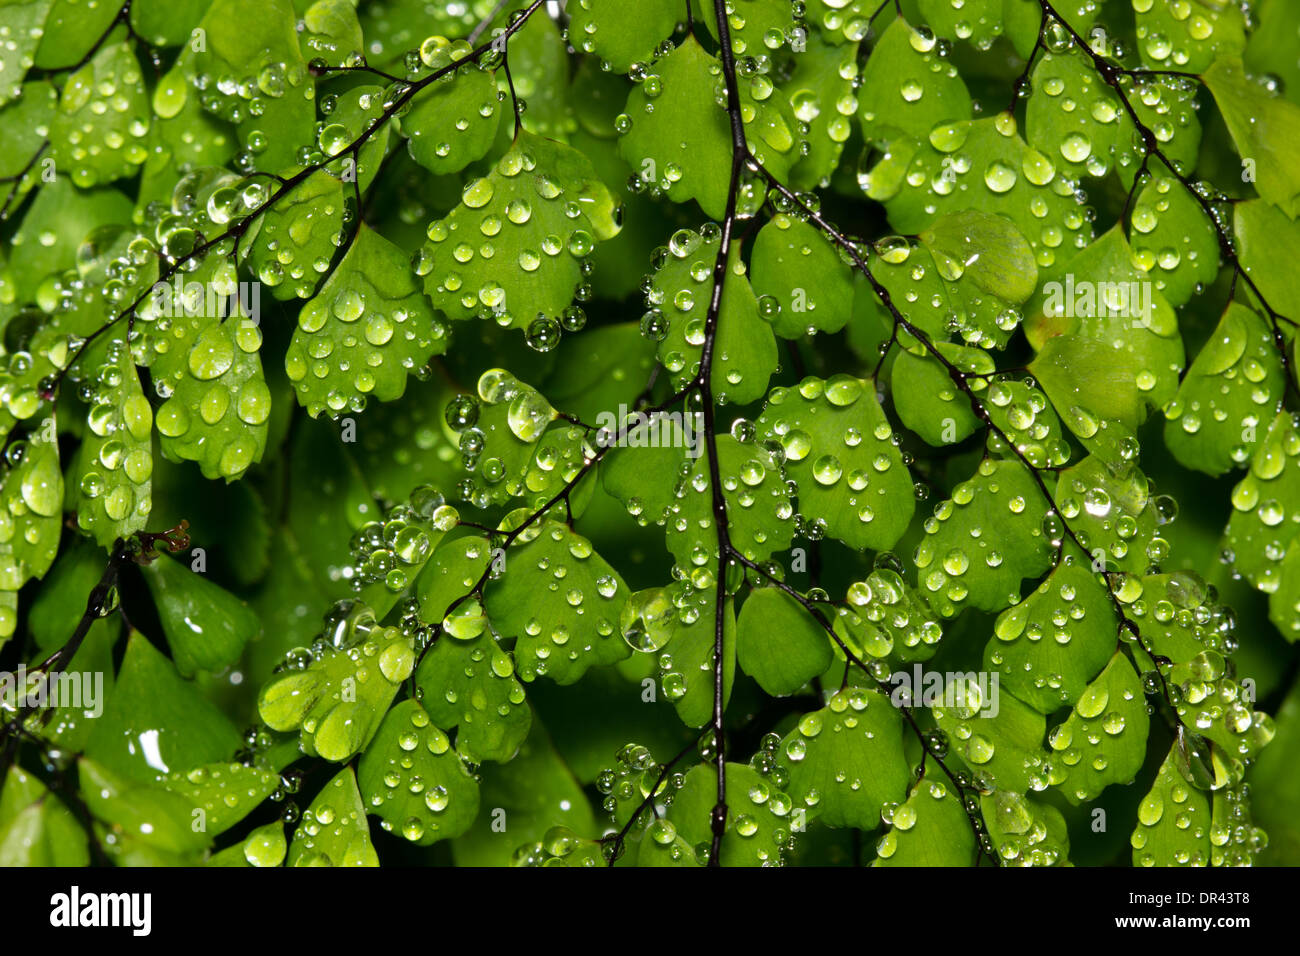 dewdrops-on-the-hardy-maidenhair-fern-adiantum-venustum-DR43T8.jpg